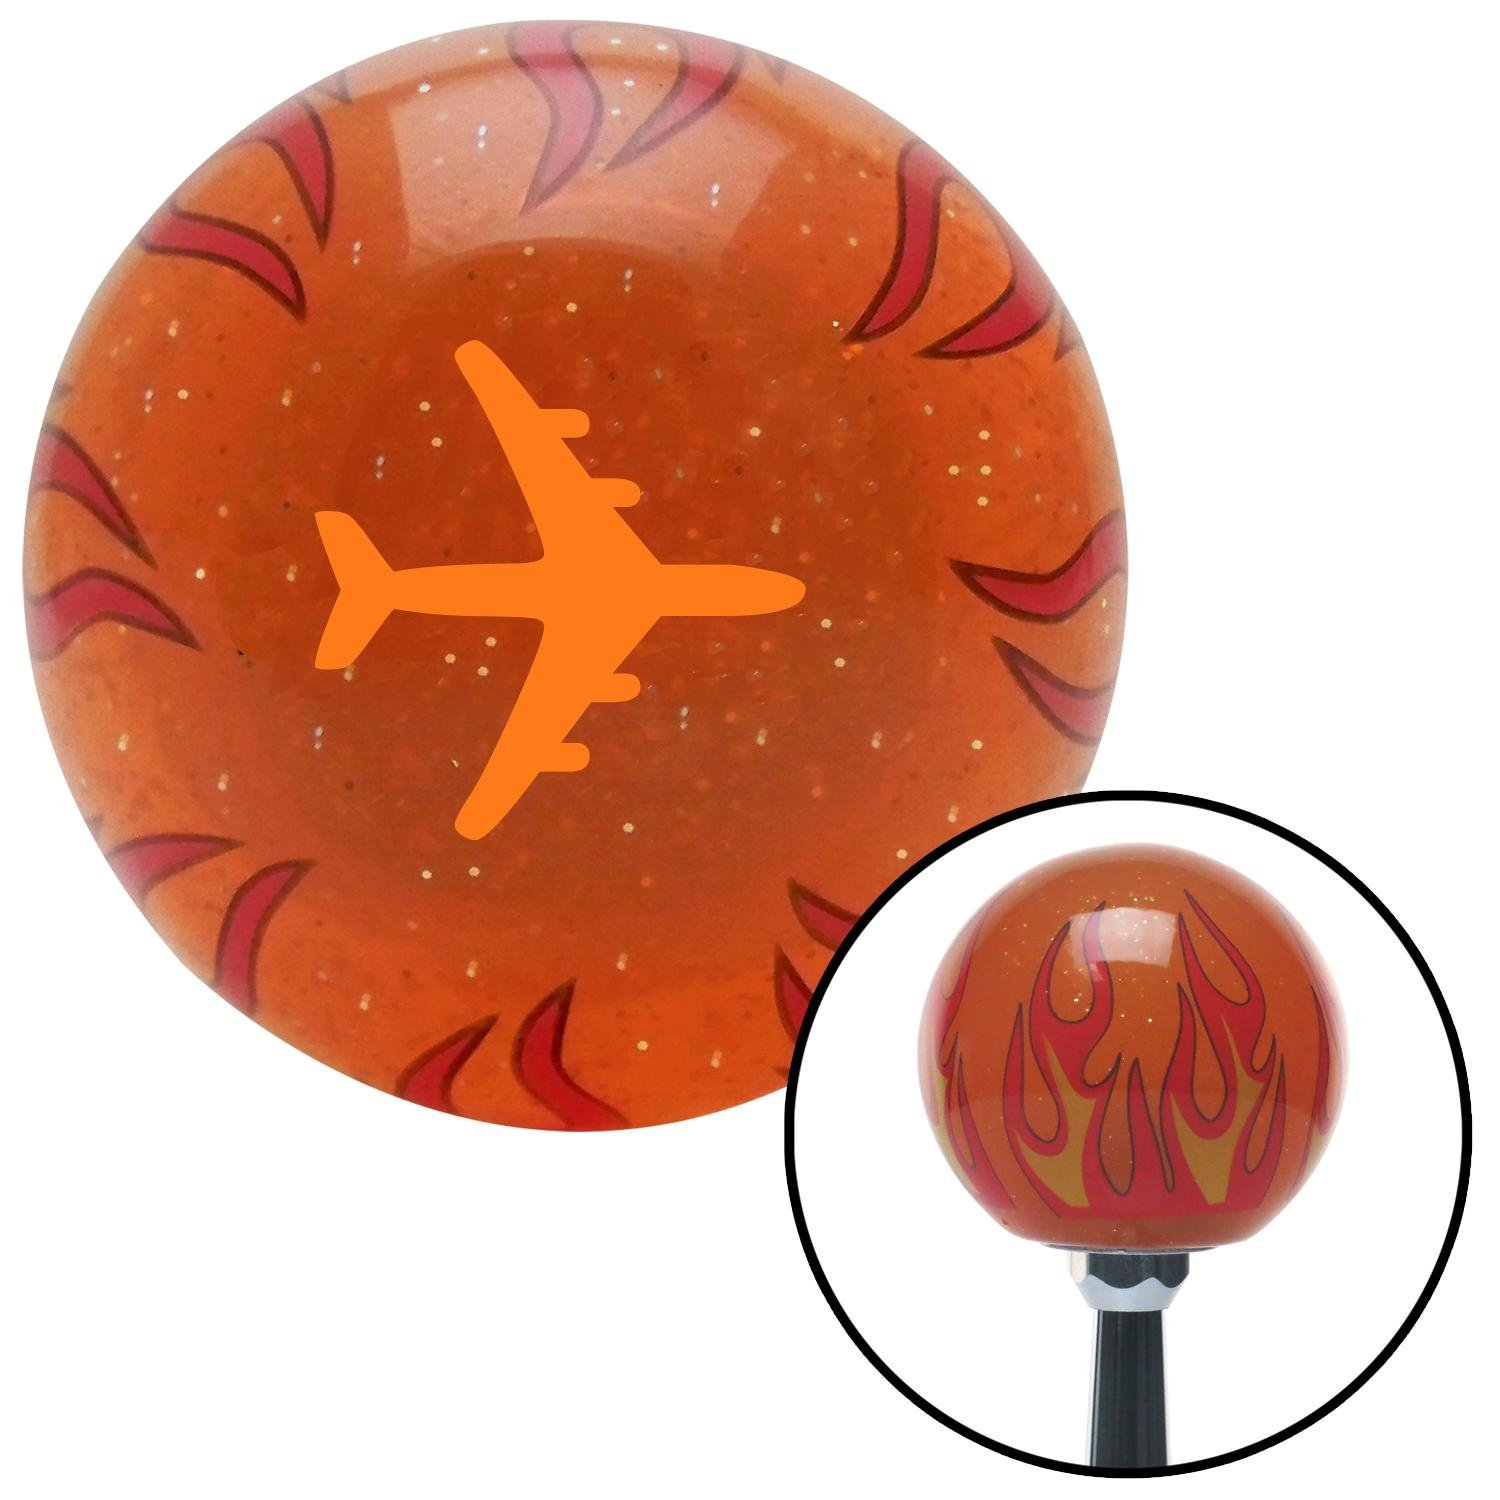 American Shifter 256762 Orange Flame Metal Flake Shift Knob with M16 x 1.5 Insert Orange Commercial Airplane